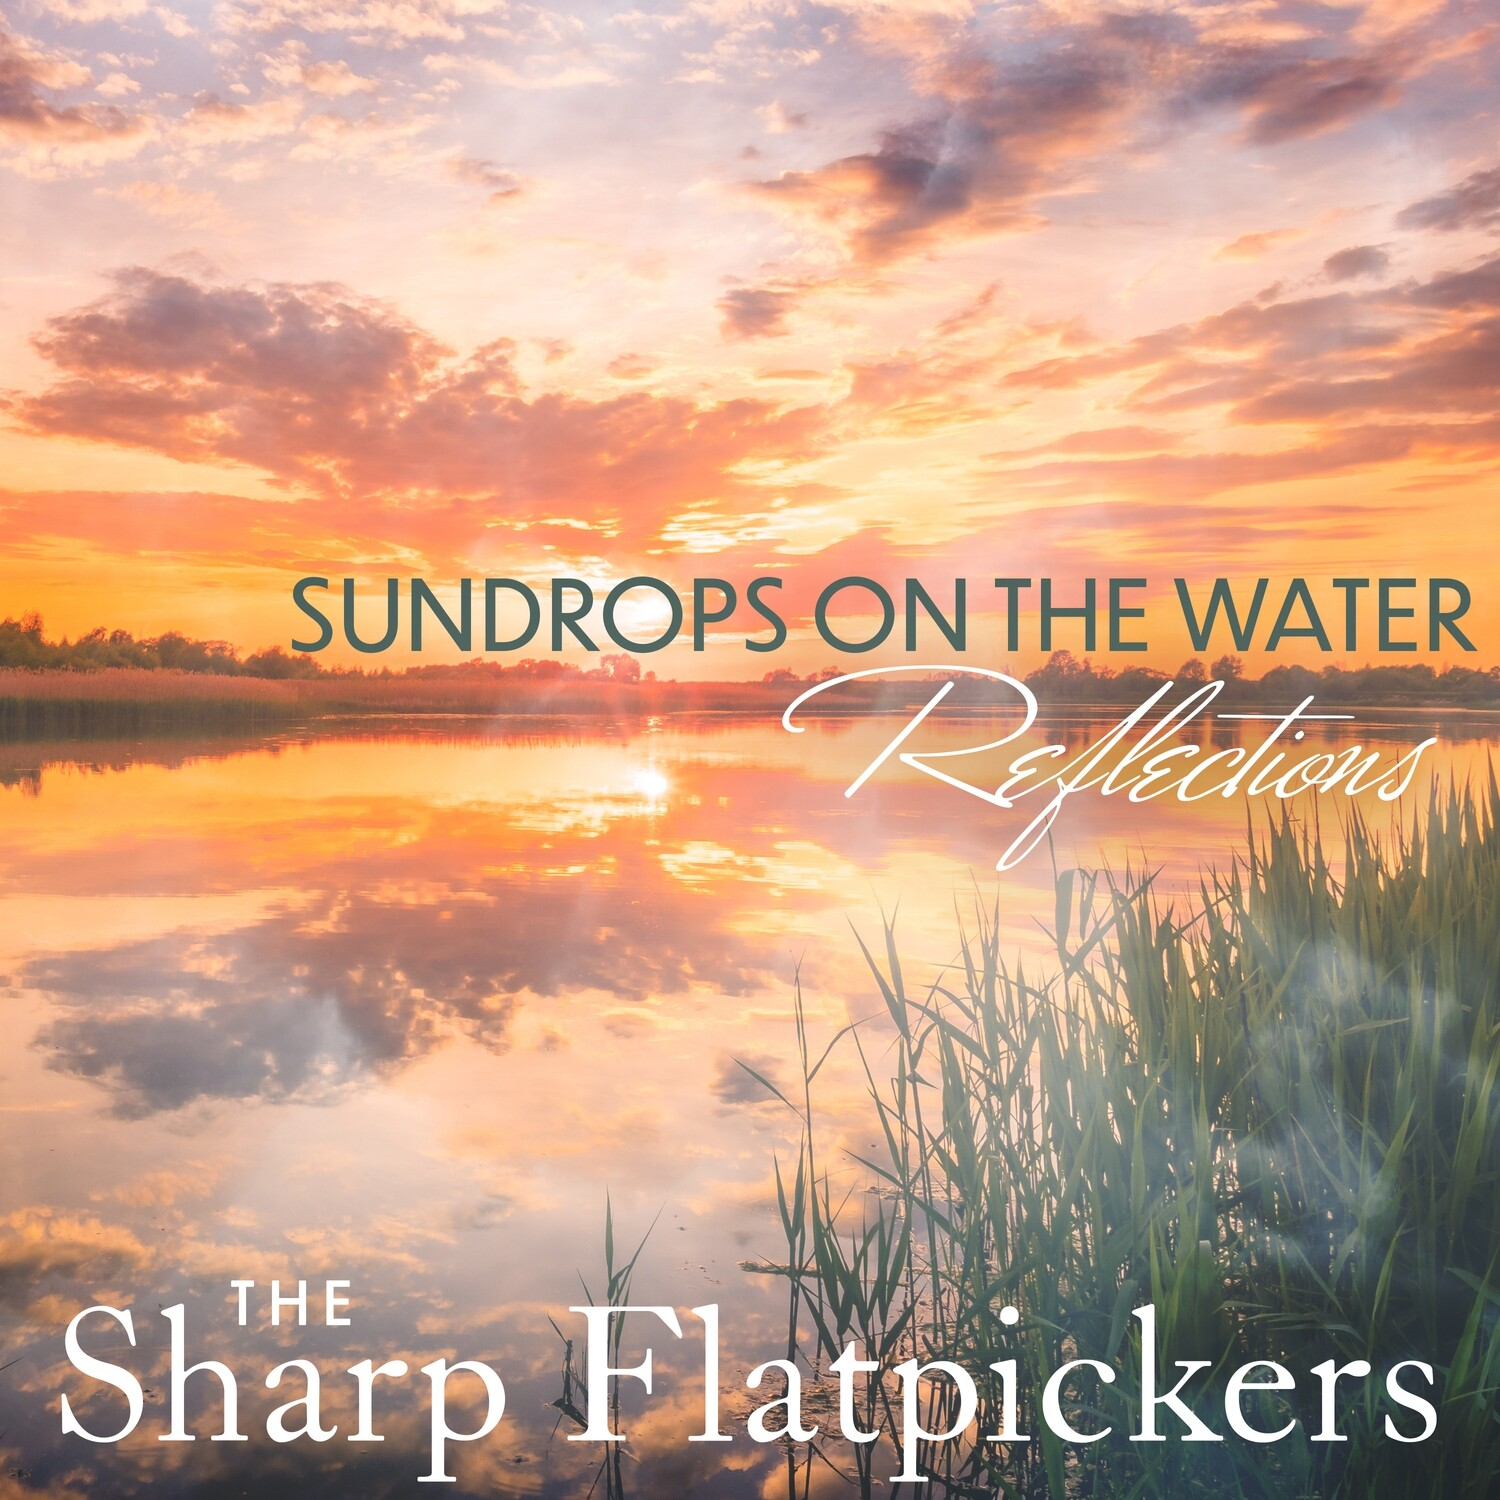 Sharp Flatpickers - Sundrops on the Water - Reflections